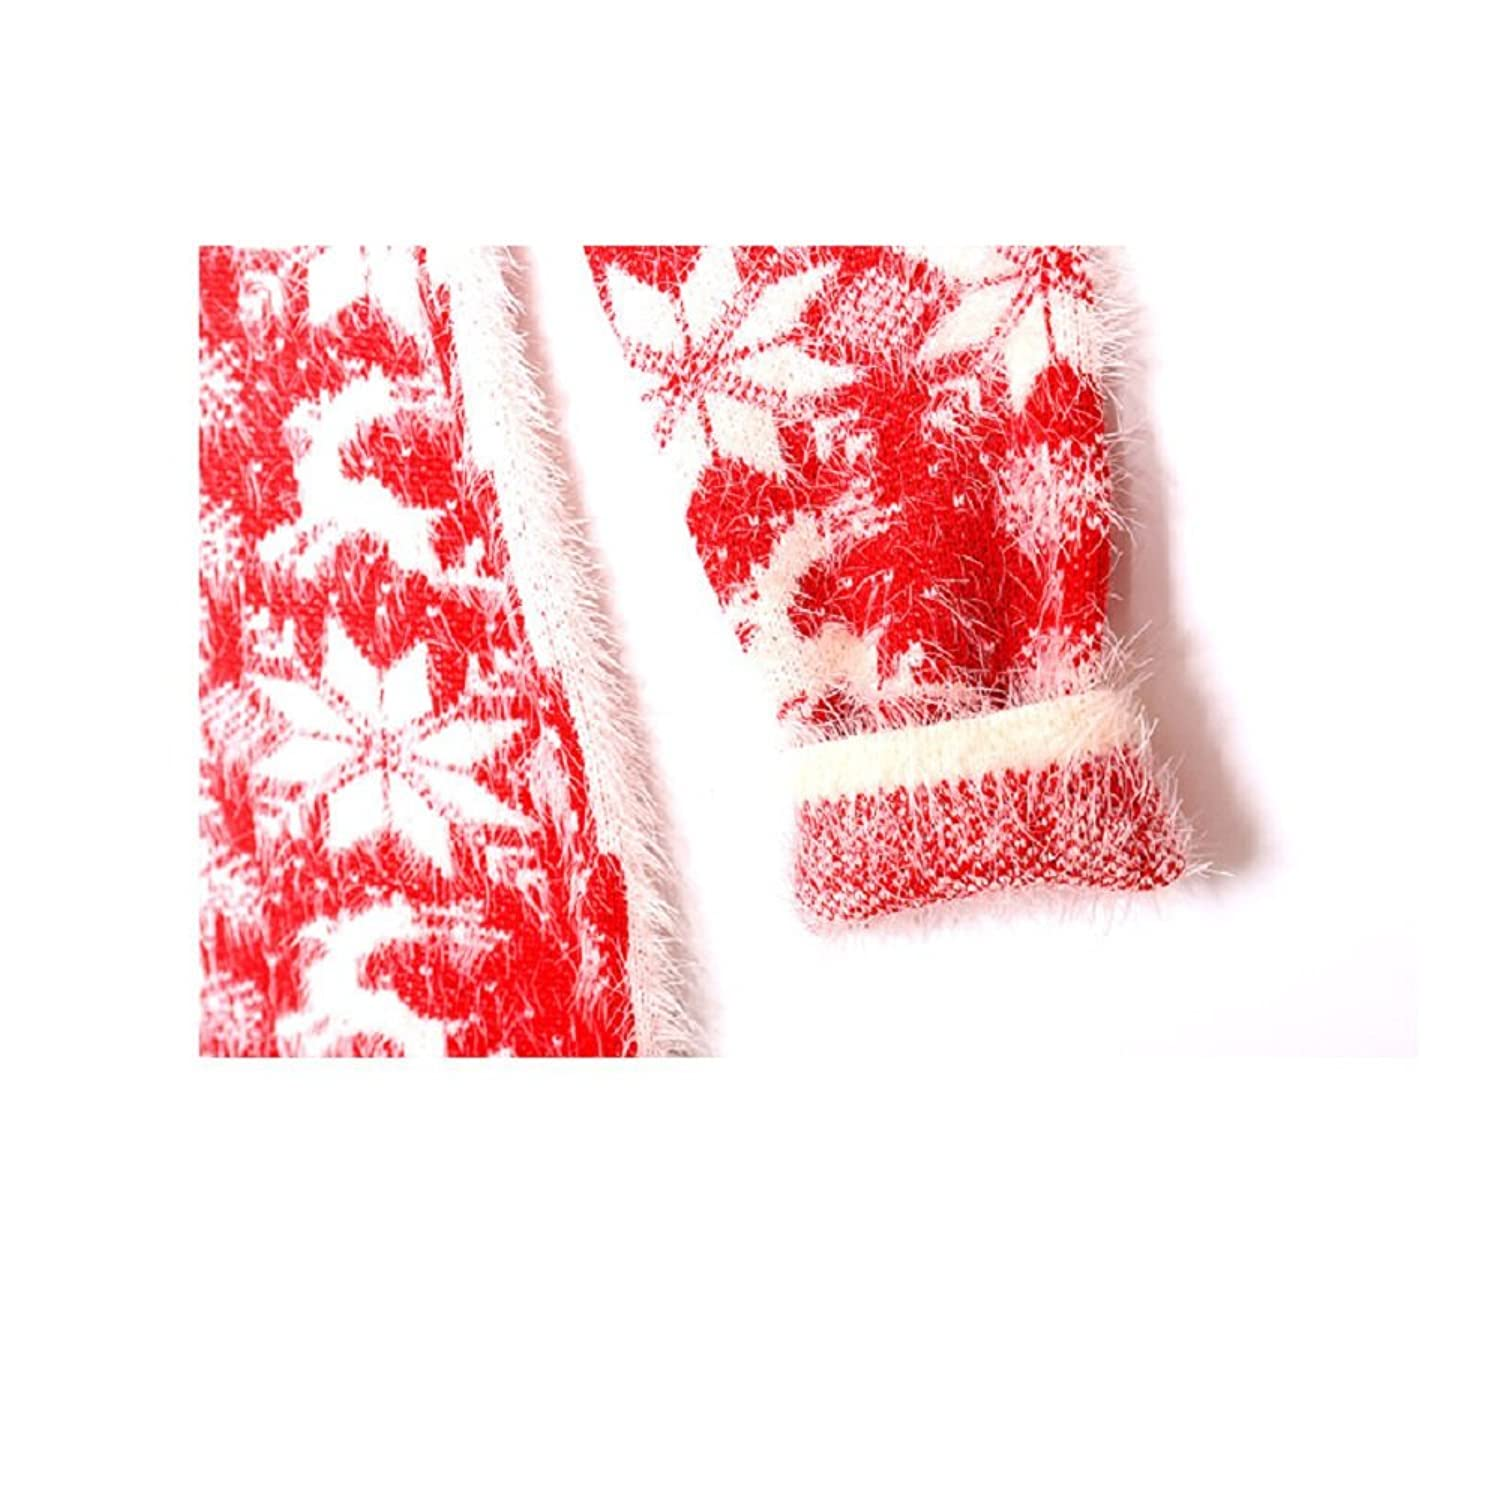 Hanxue Women's Warm Mohair Christmas Snowflake Loose Knit Sweaters Pullovers